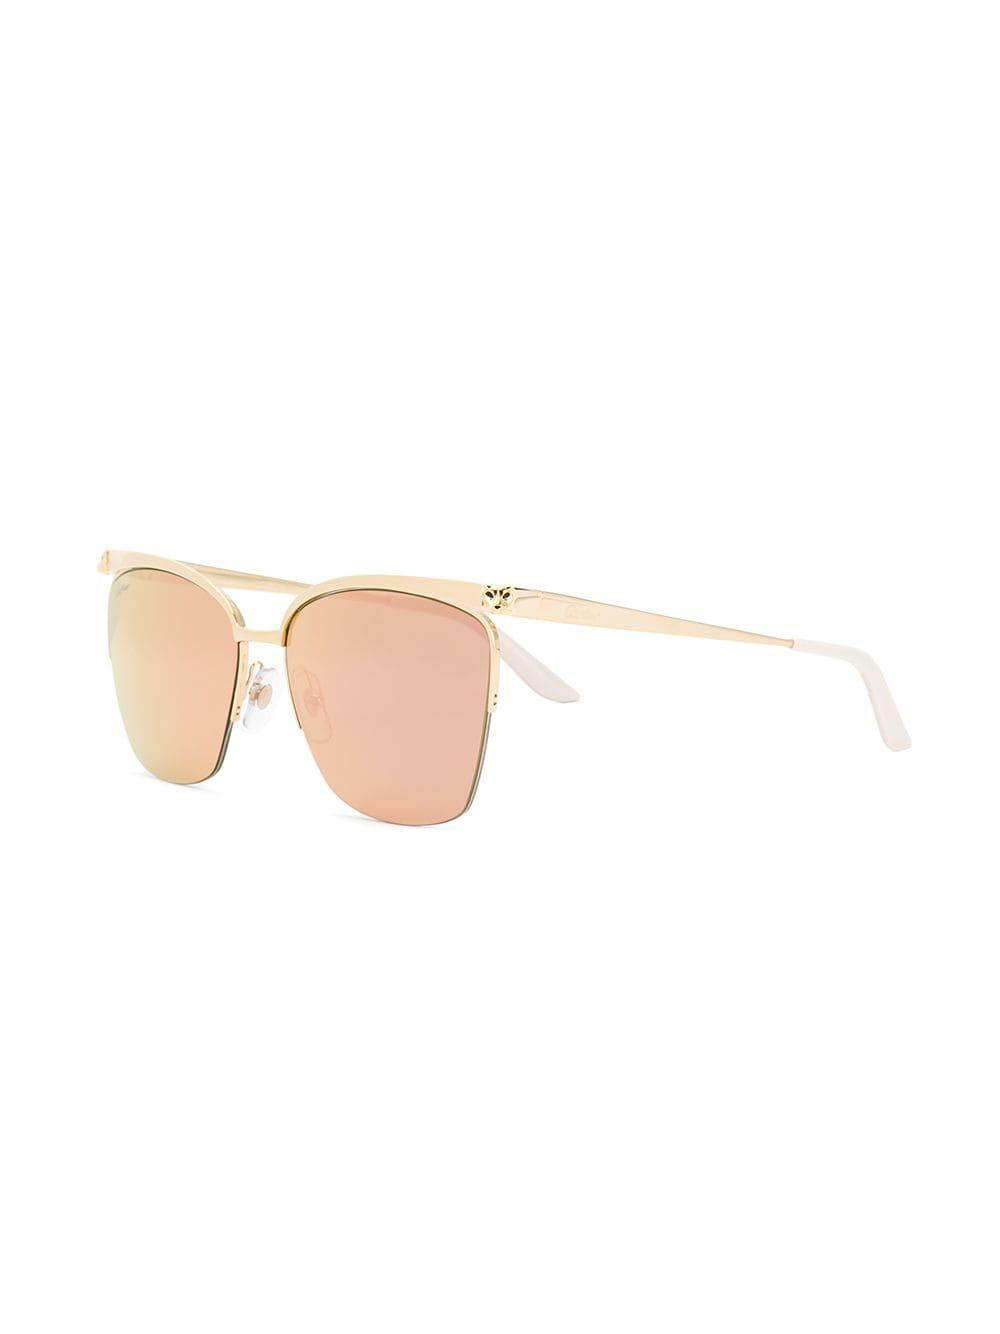 ebd0d420469 Cartier - Metallic Panthère De Sunglasses - Lyst. View fullscreen